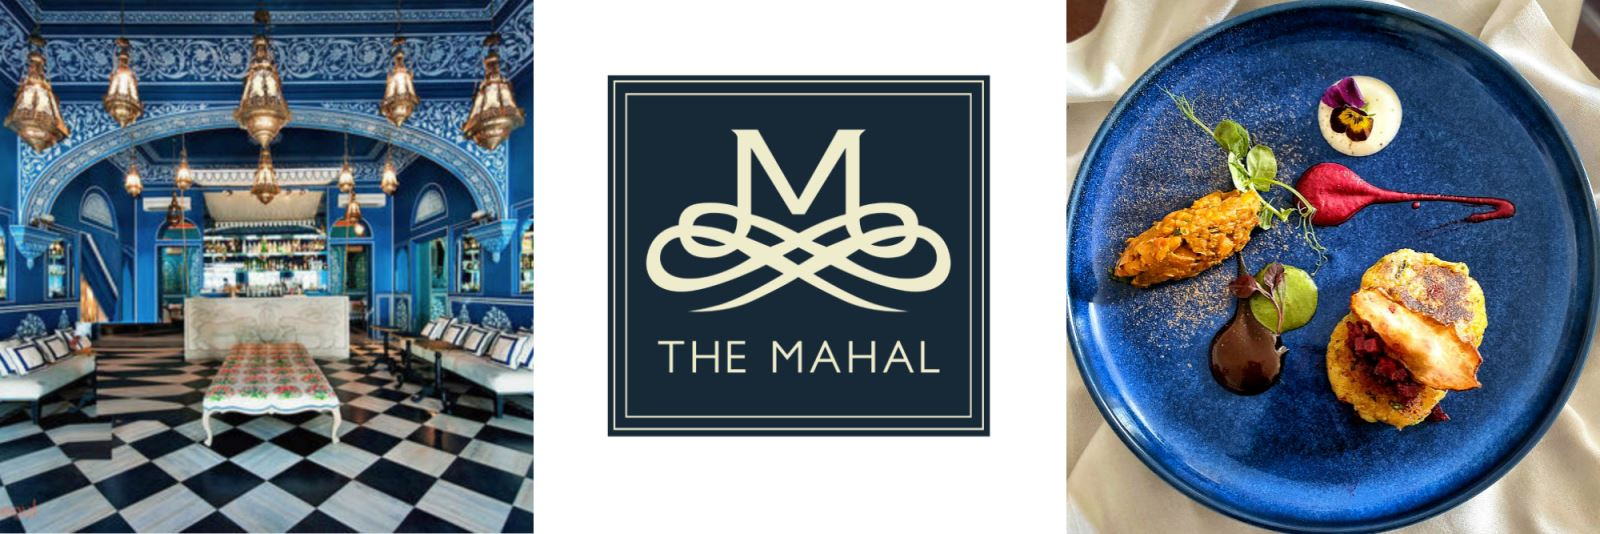 Selection of images - interior of Mahal, Mahal's logo and delicious food.